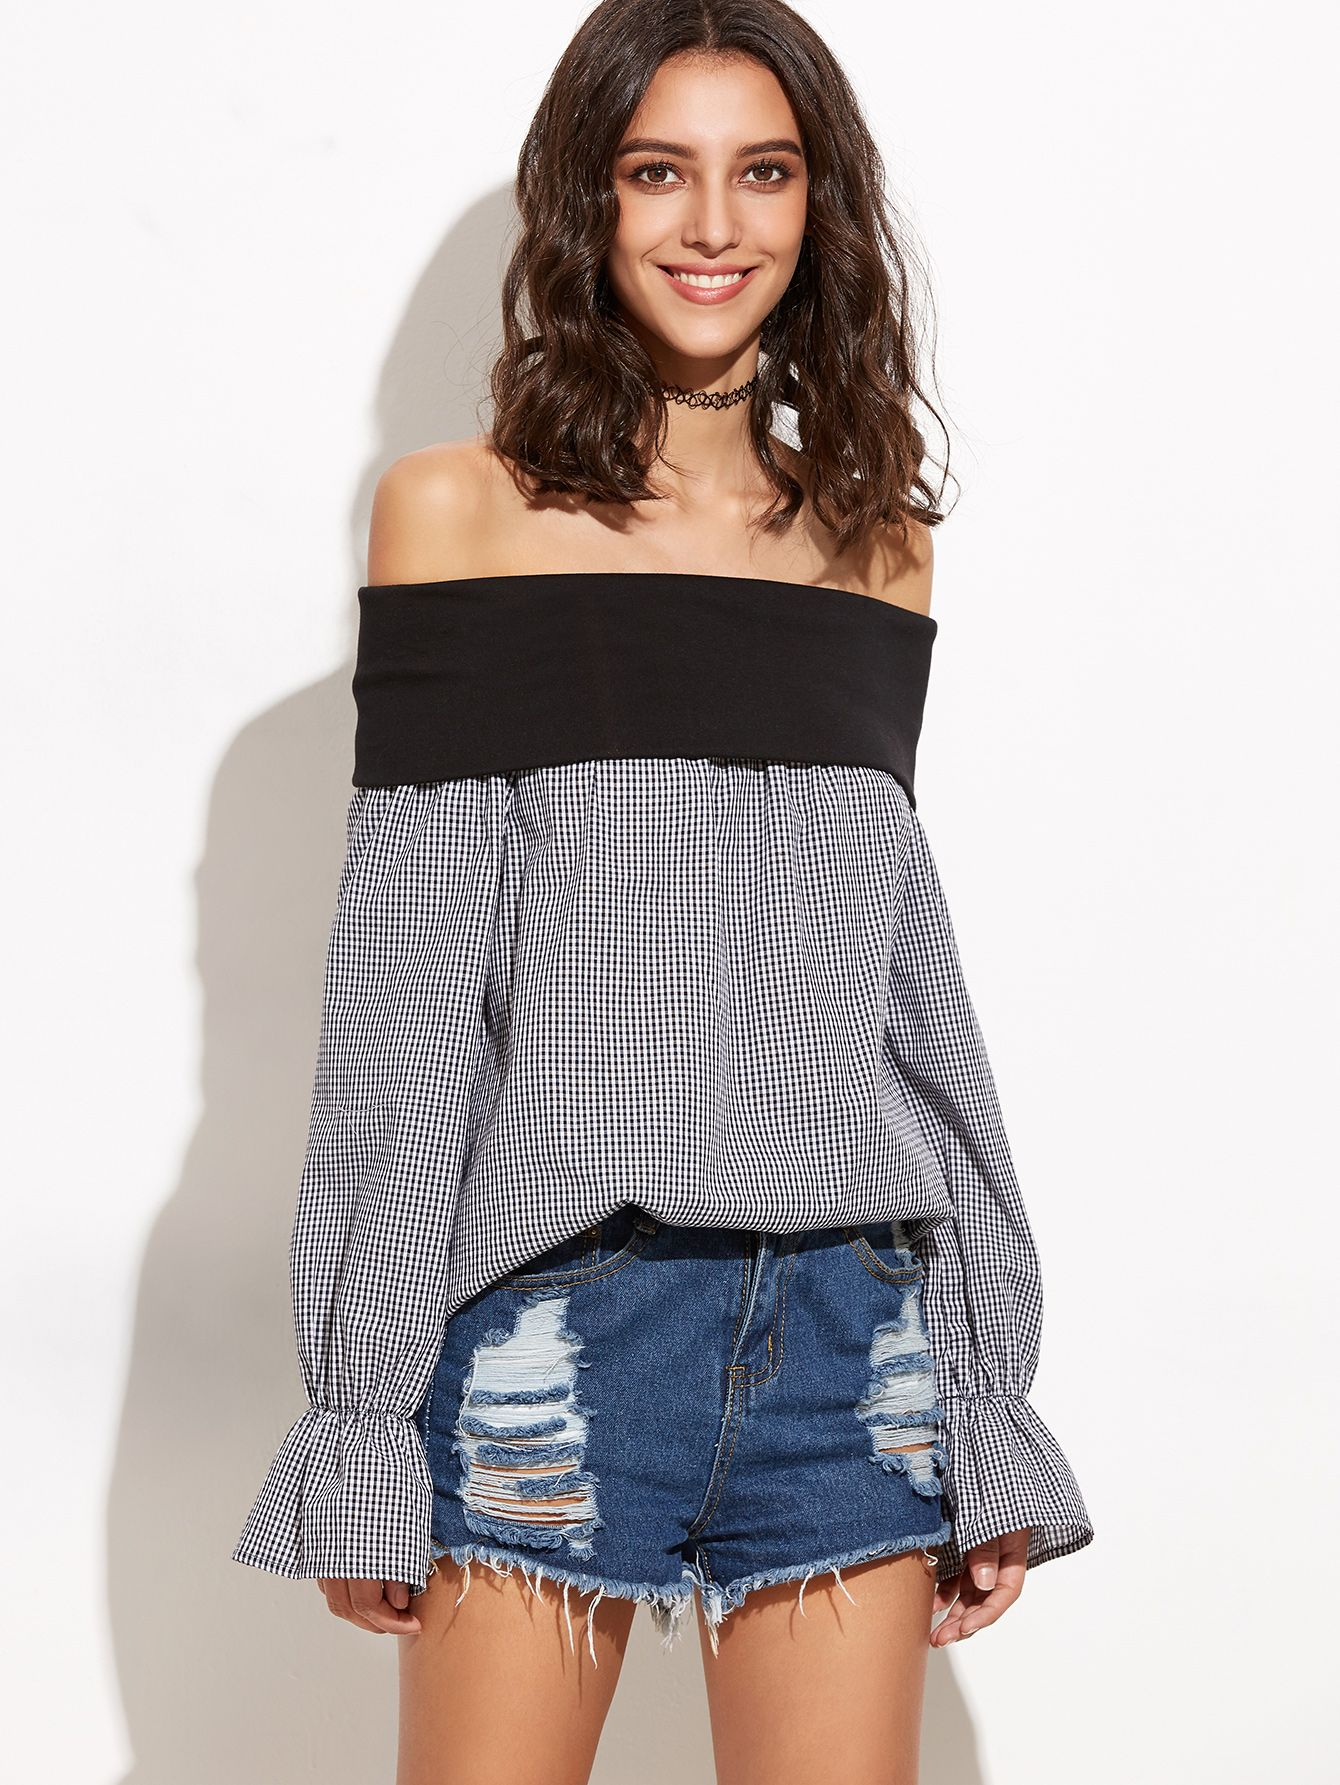 Black Gingham Foldover Off The Shoulder Top — 0.00 € ------------color: Black and White size: L,M,XS